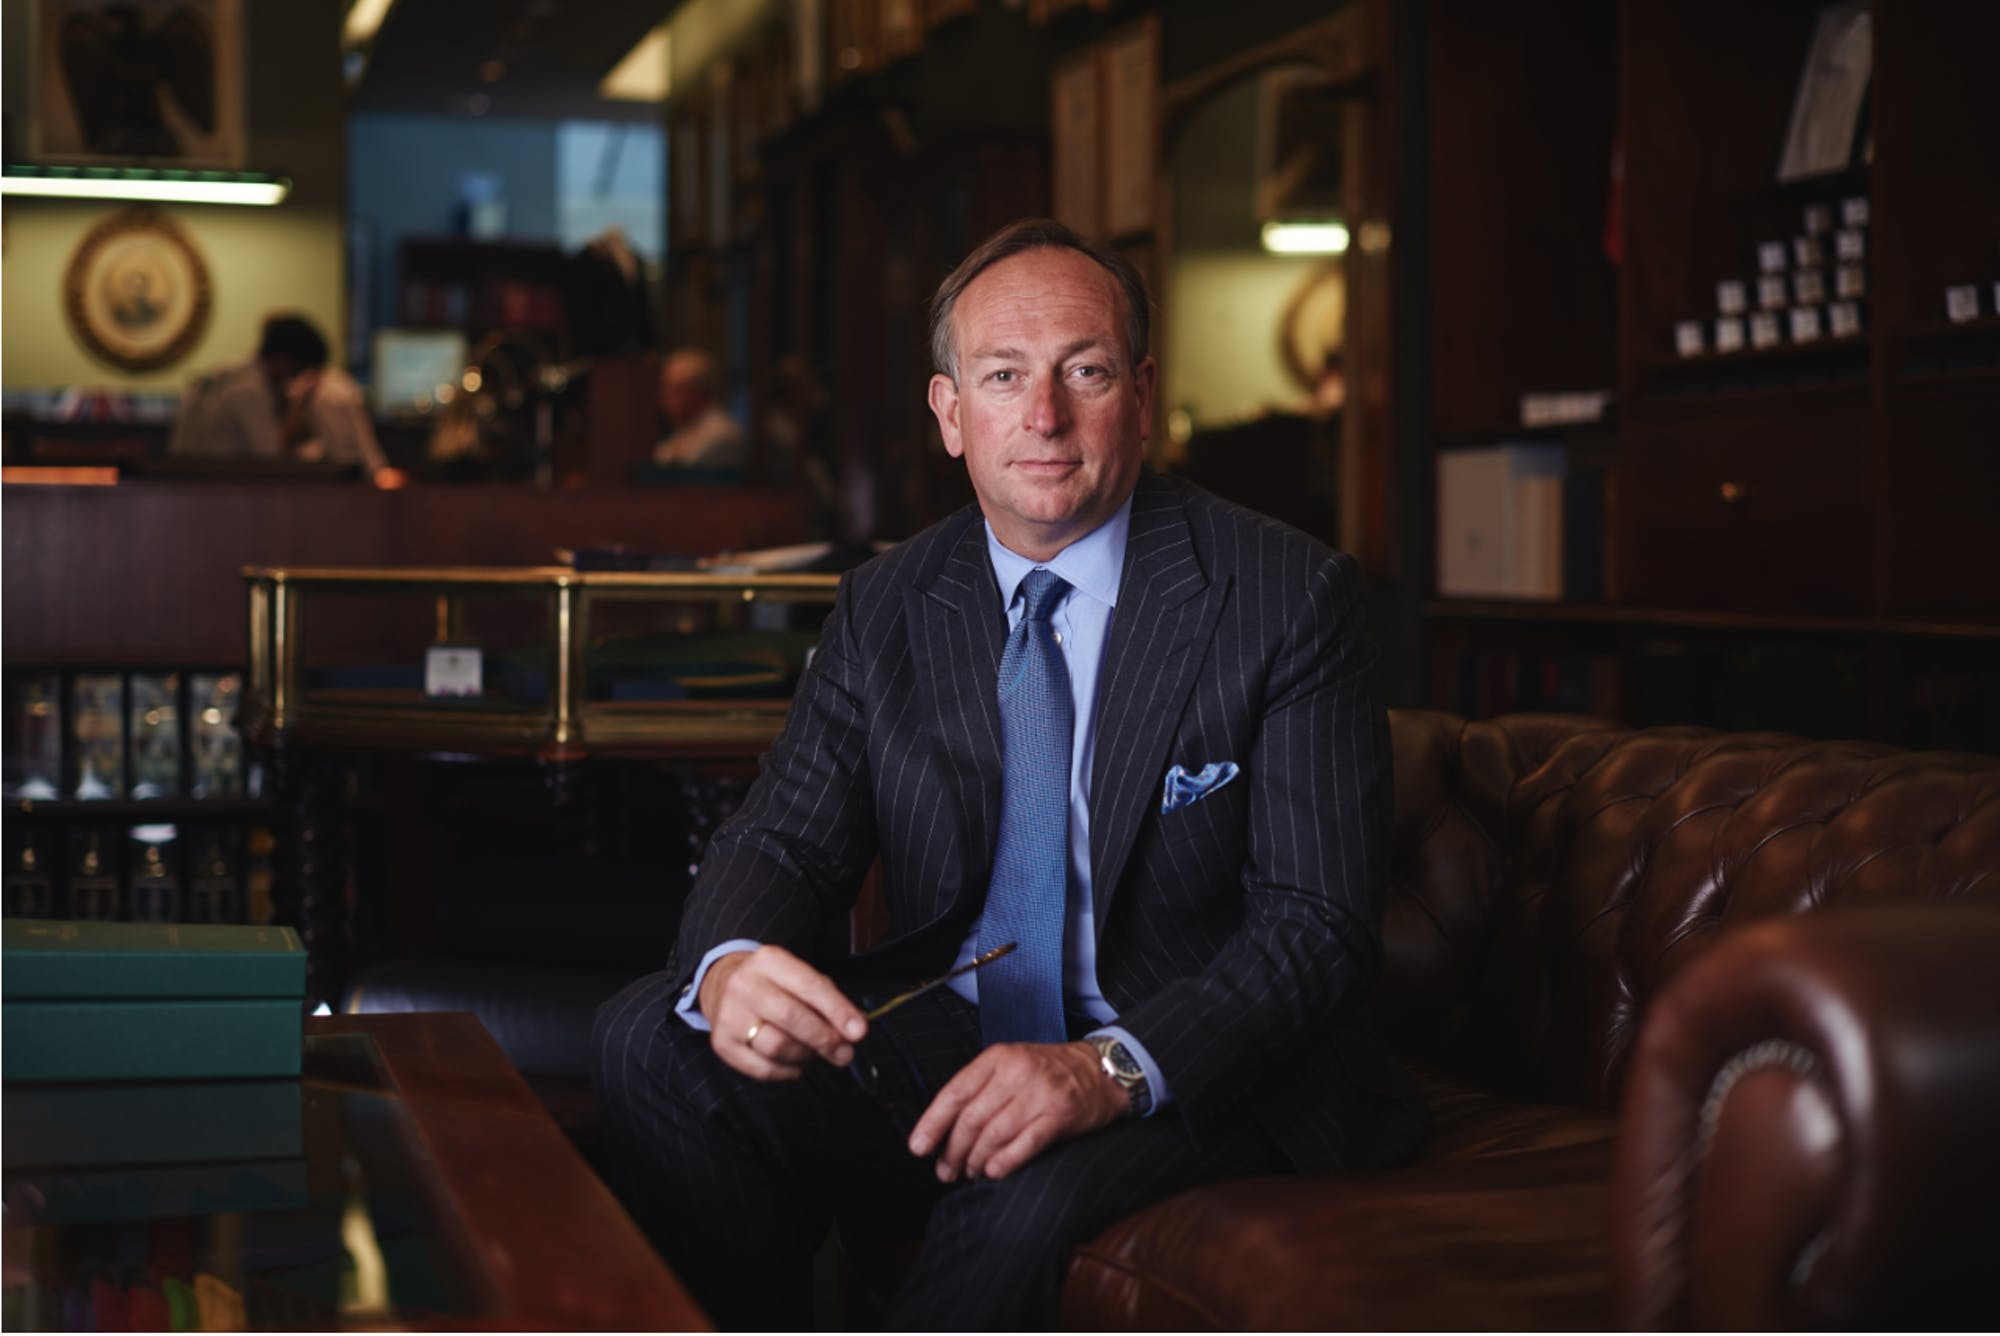 Navigating the Crisis  Simon Cundey on leading Henry Poole through Covid-19